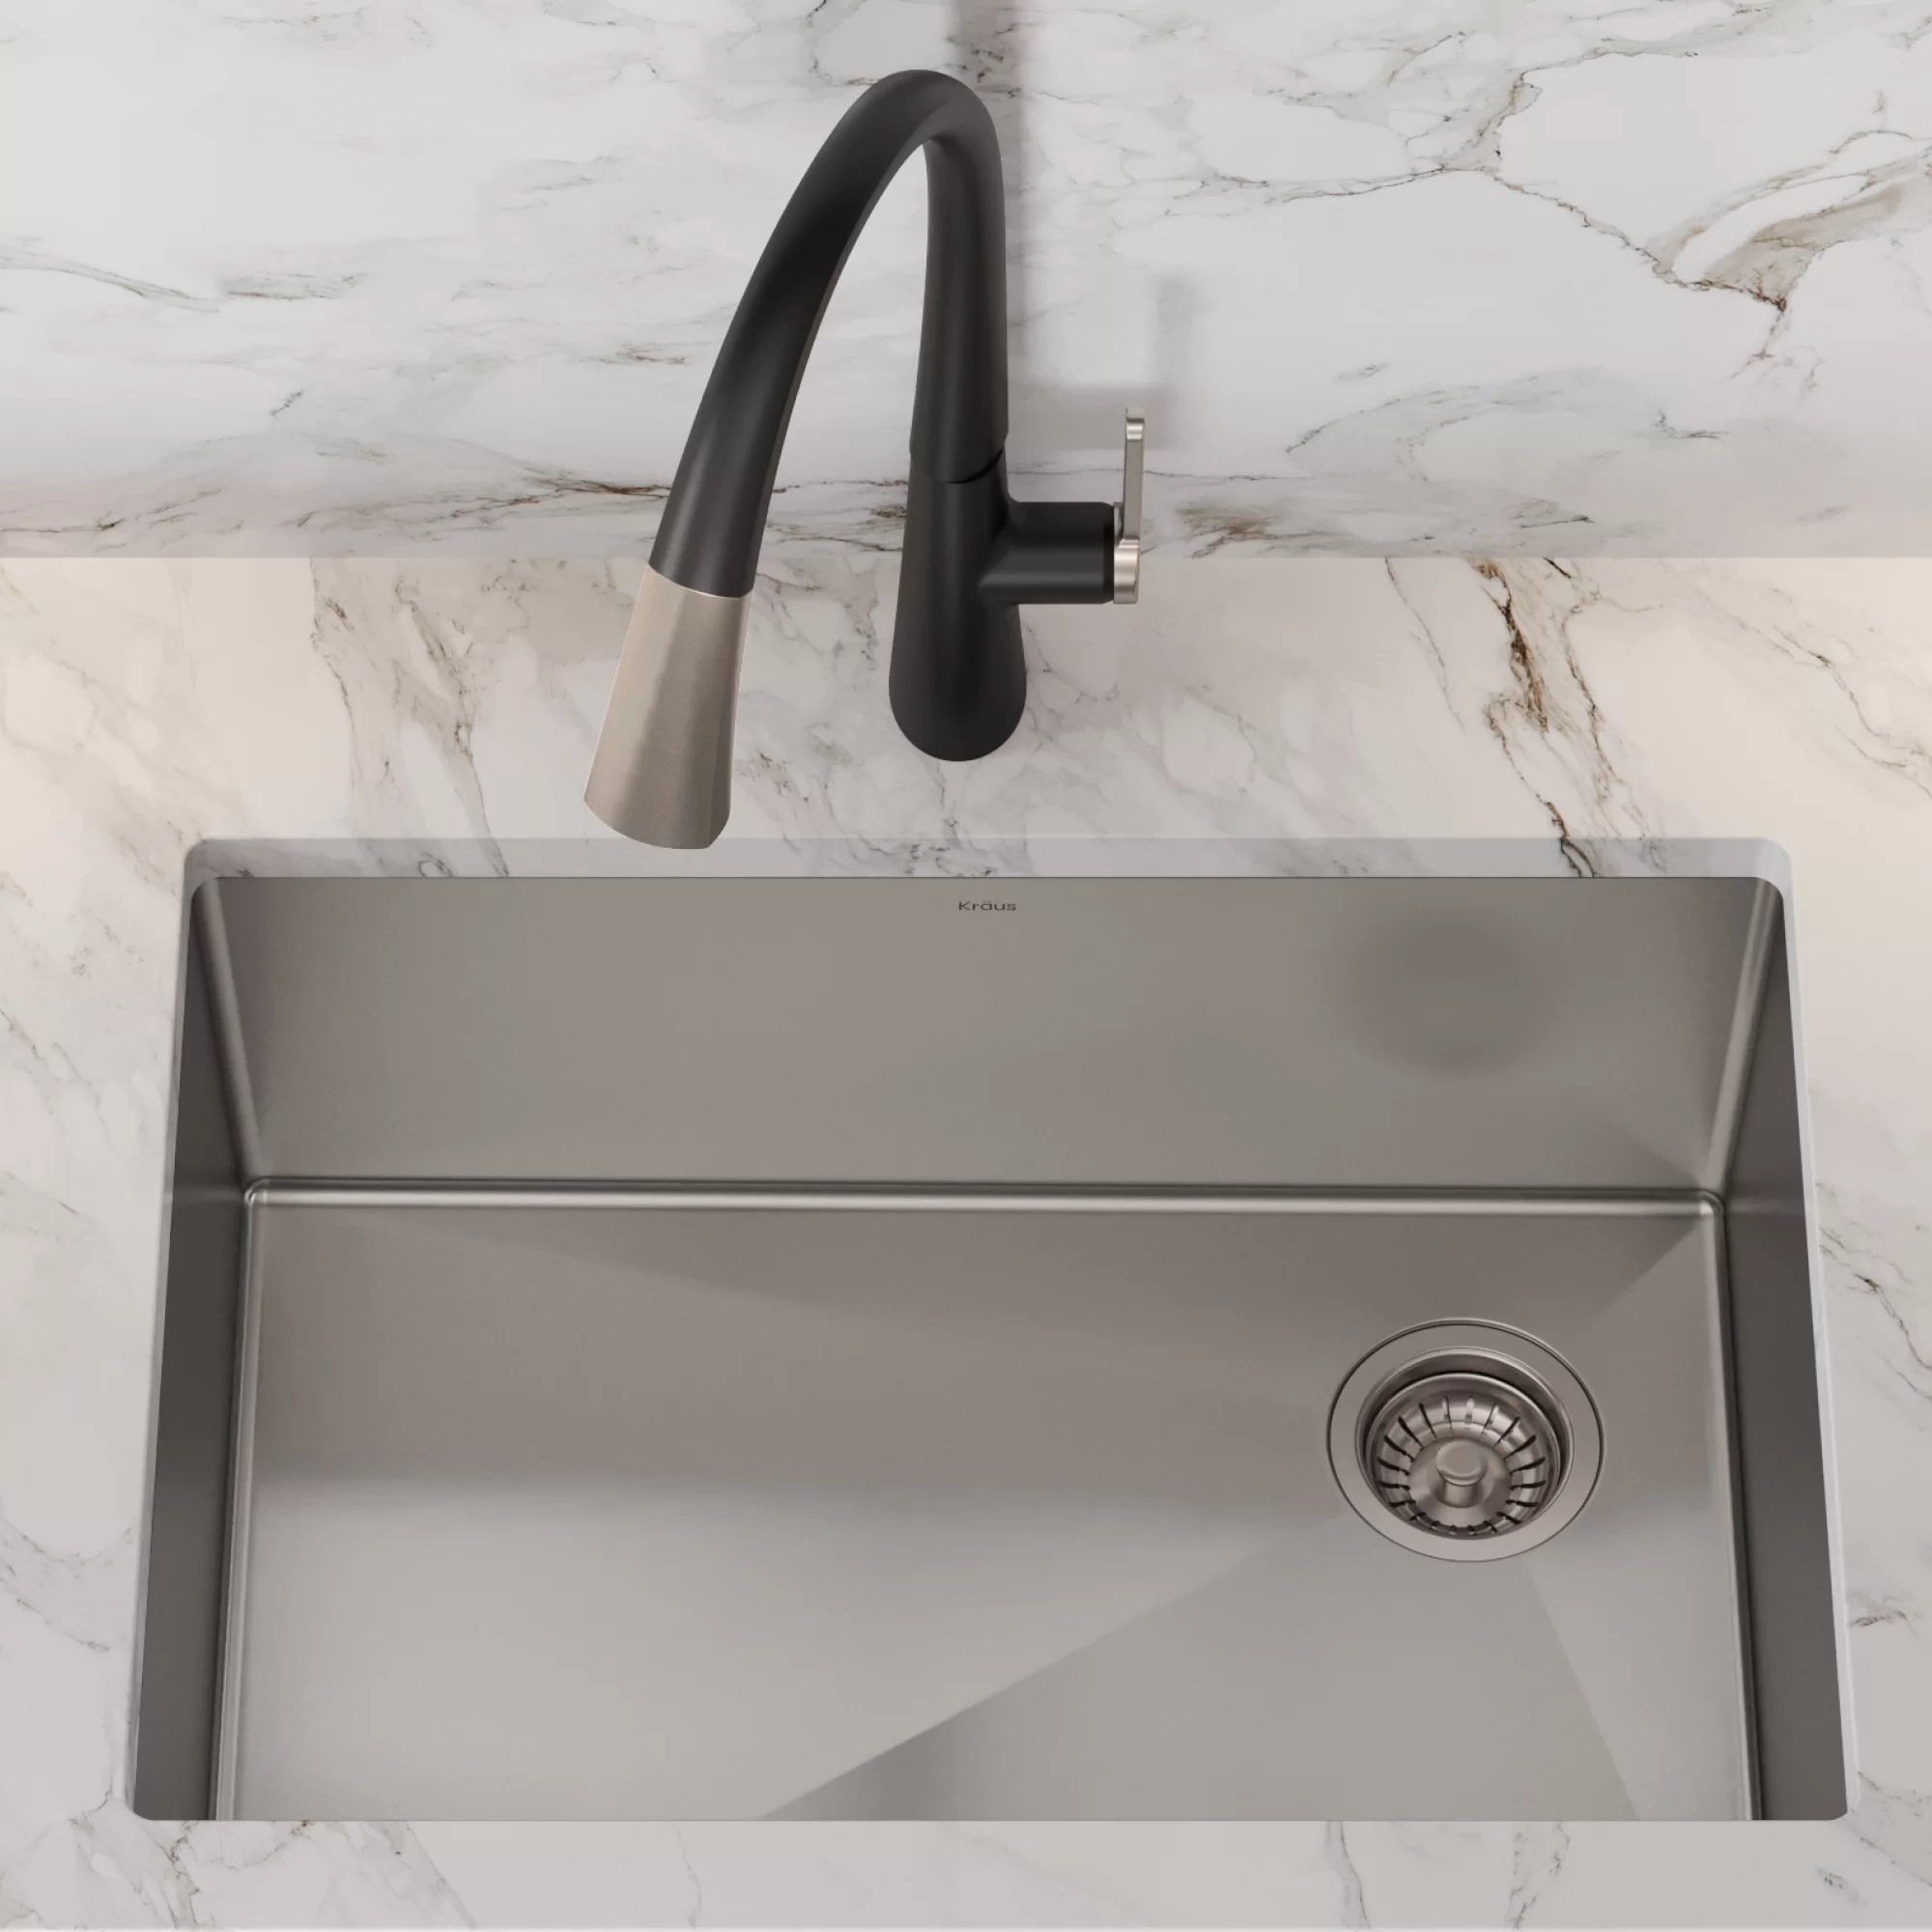 standart pro 16 gauge 27 x 19 kitchen sink with bottom grid drain assembly and drain cap